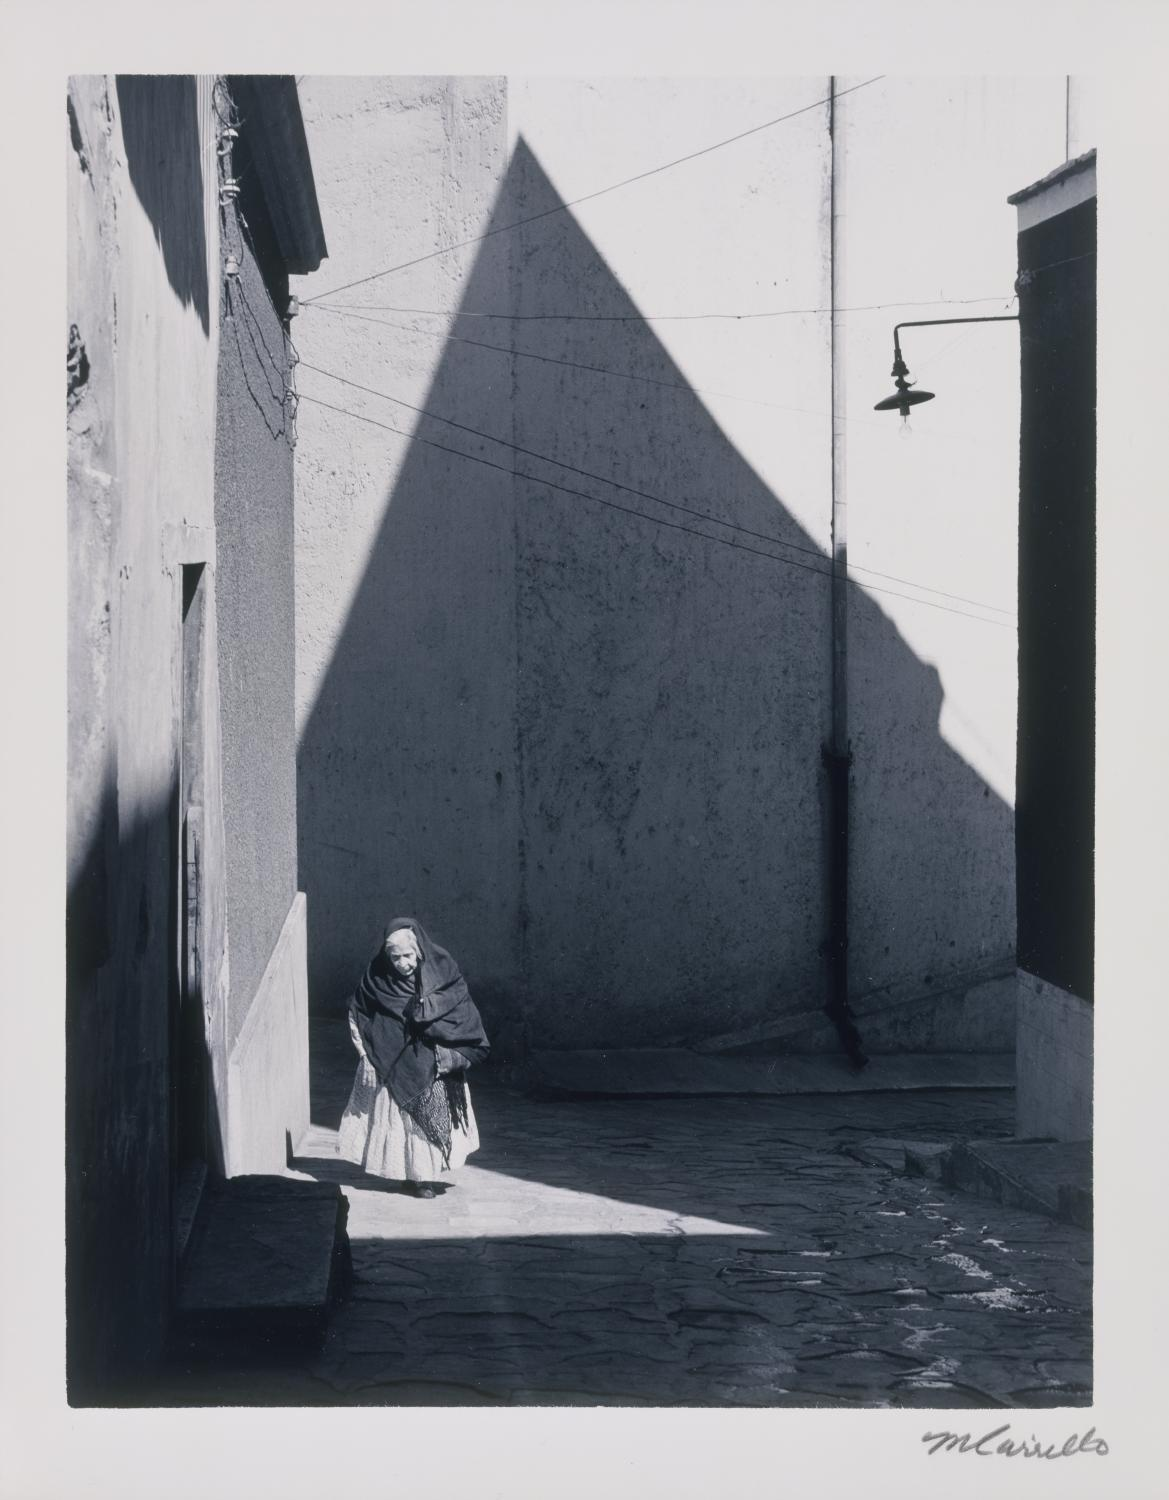 Manuel Carrillo, Mexico City, D. F., 1966. Silver gelatin print. Gift of Arnold M. Gilbert 1982-22-27